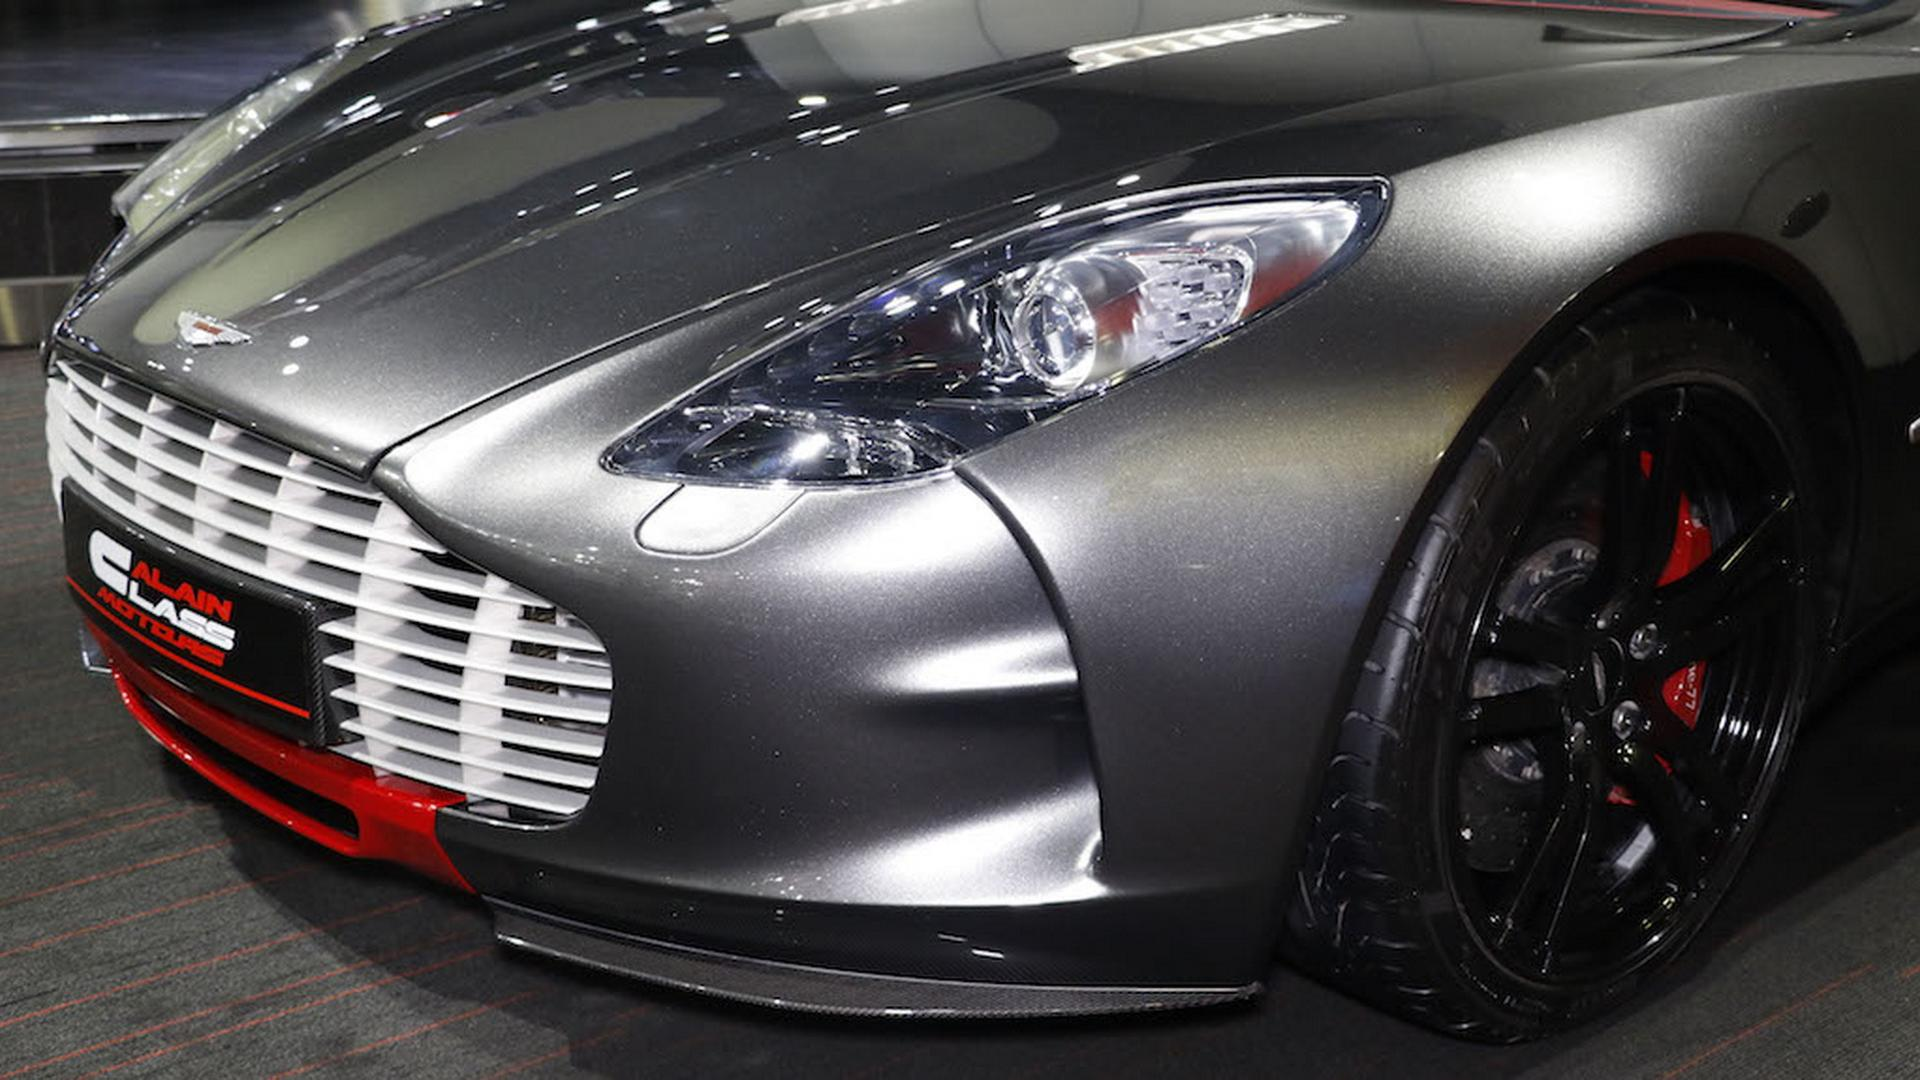 2011-aston-martin-one-77-q-series (11)